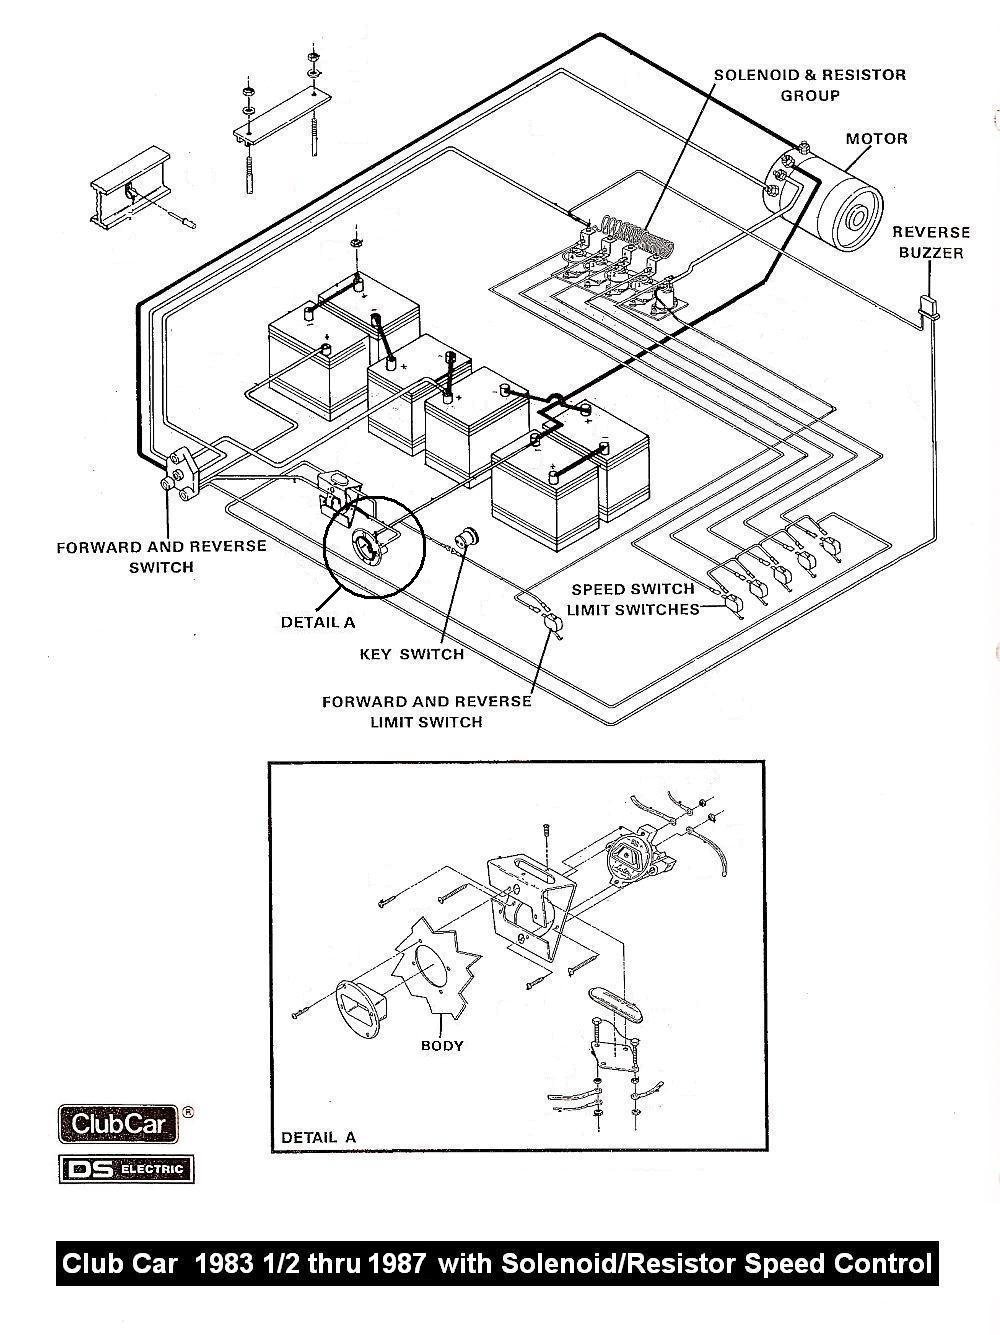 [DIAGRAM_34OR]  CLUB CAR SCHEMATICS | 03 Club Car Wiring Diagram |  | gaminde.net